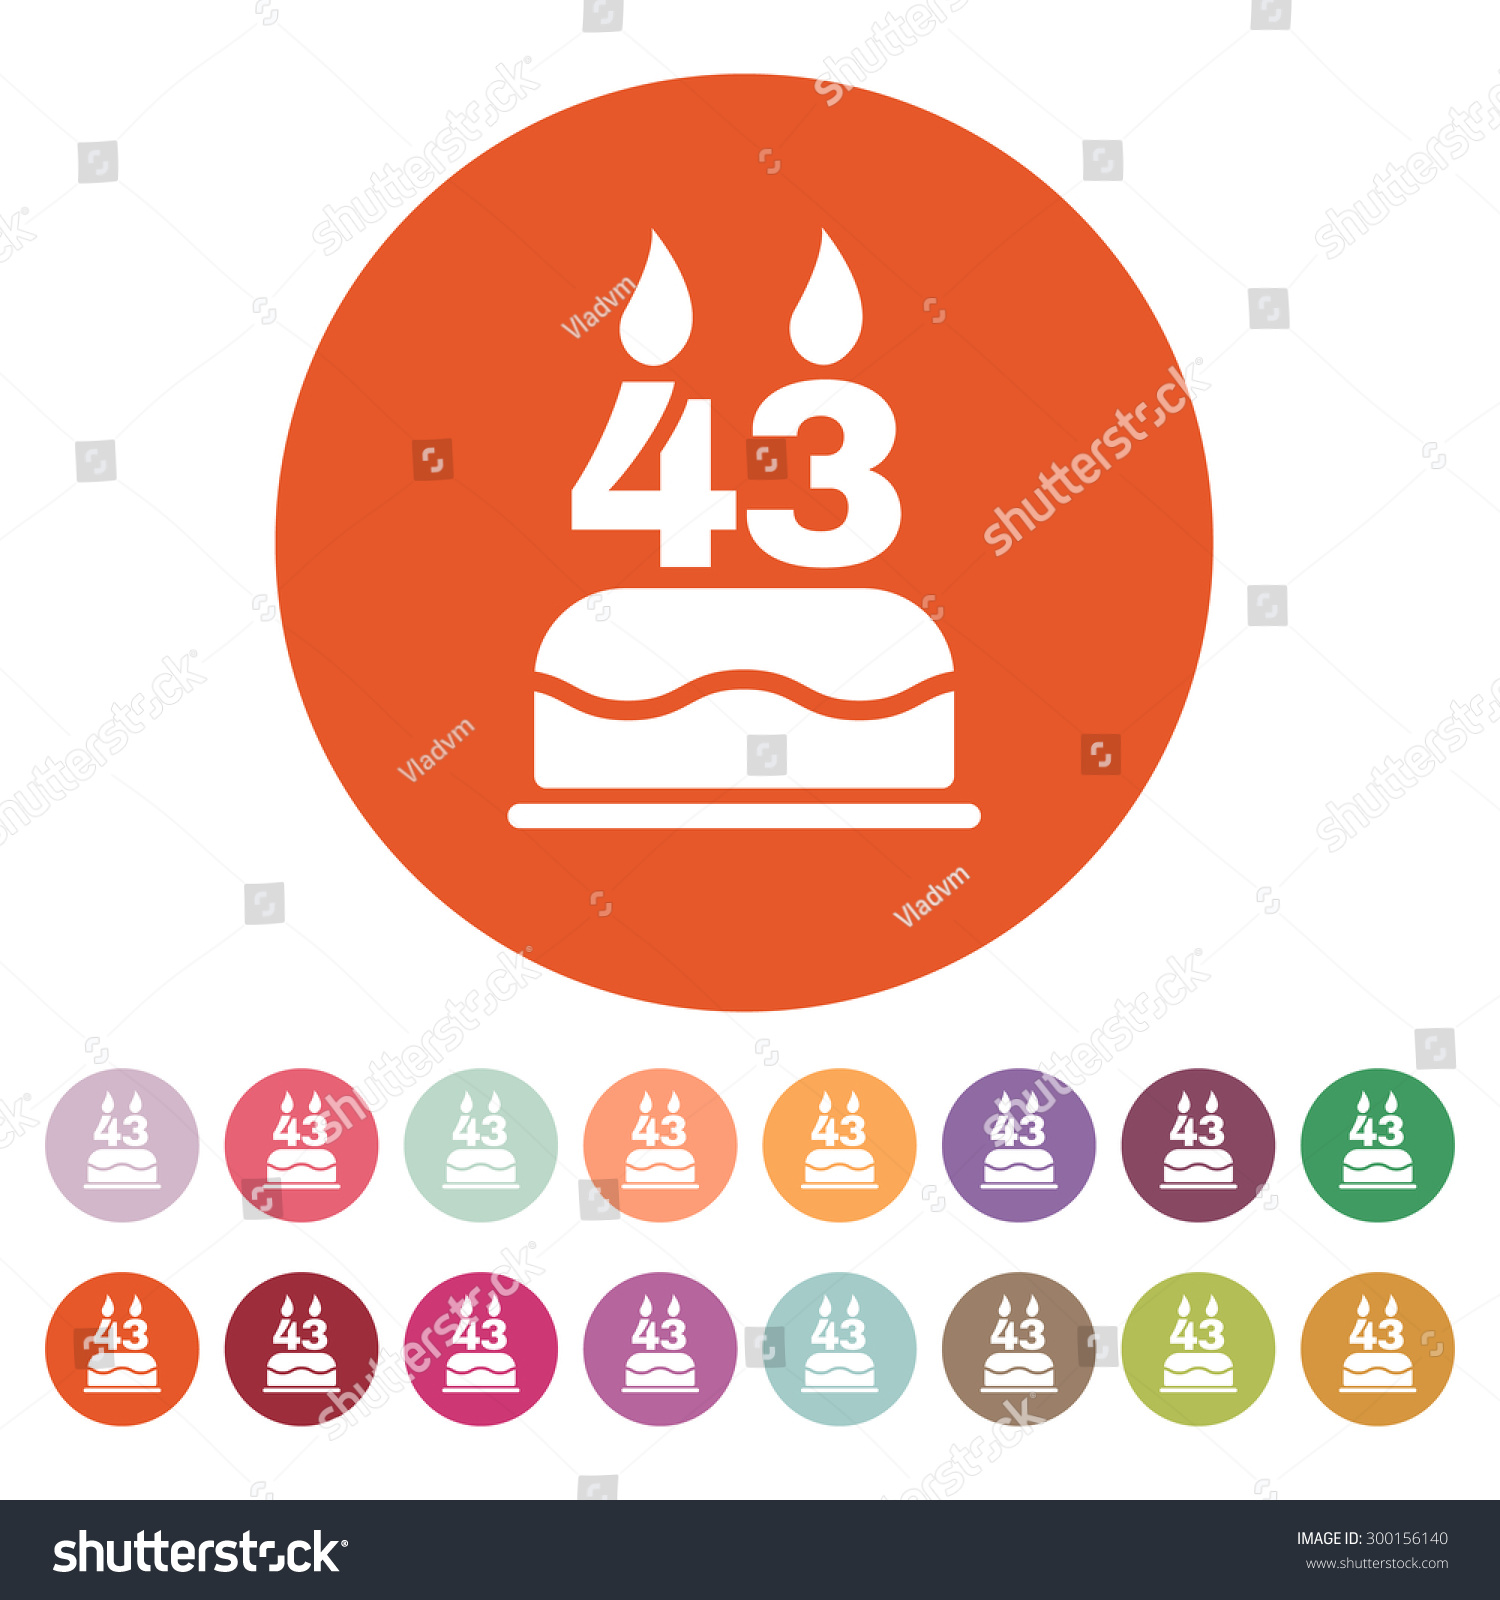 birthday-cake-with-candles-in-the-form-of-number-icon-birthday-symbol ...